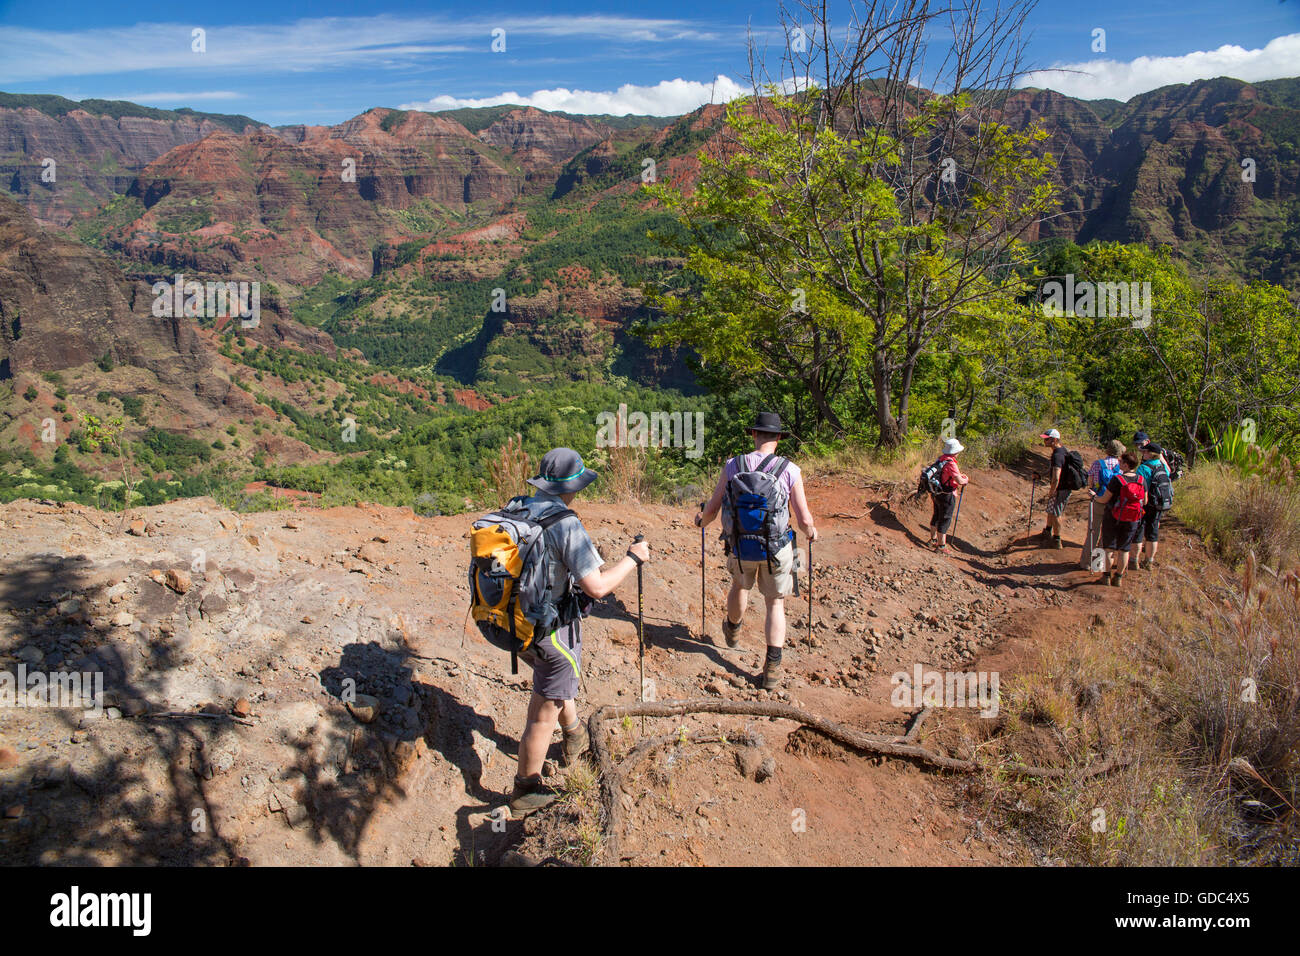 Kauai,trekking,Waimea,canyon,USA,Hawaii,America,footpath,hiking, - Stock Image